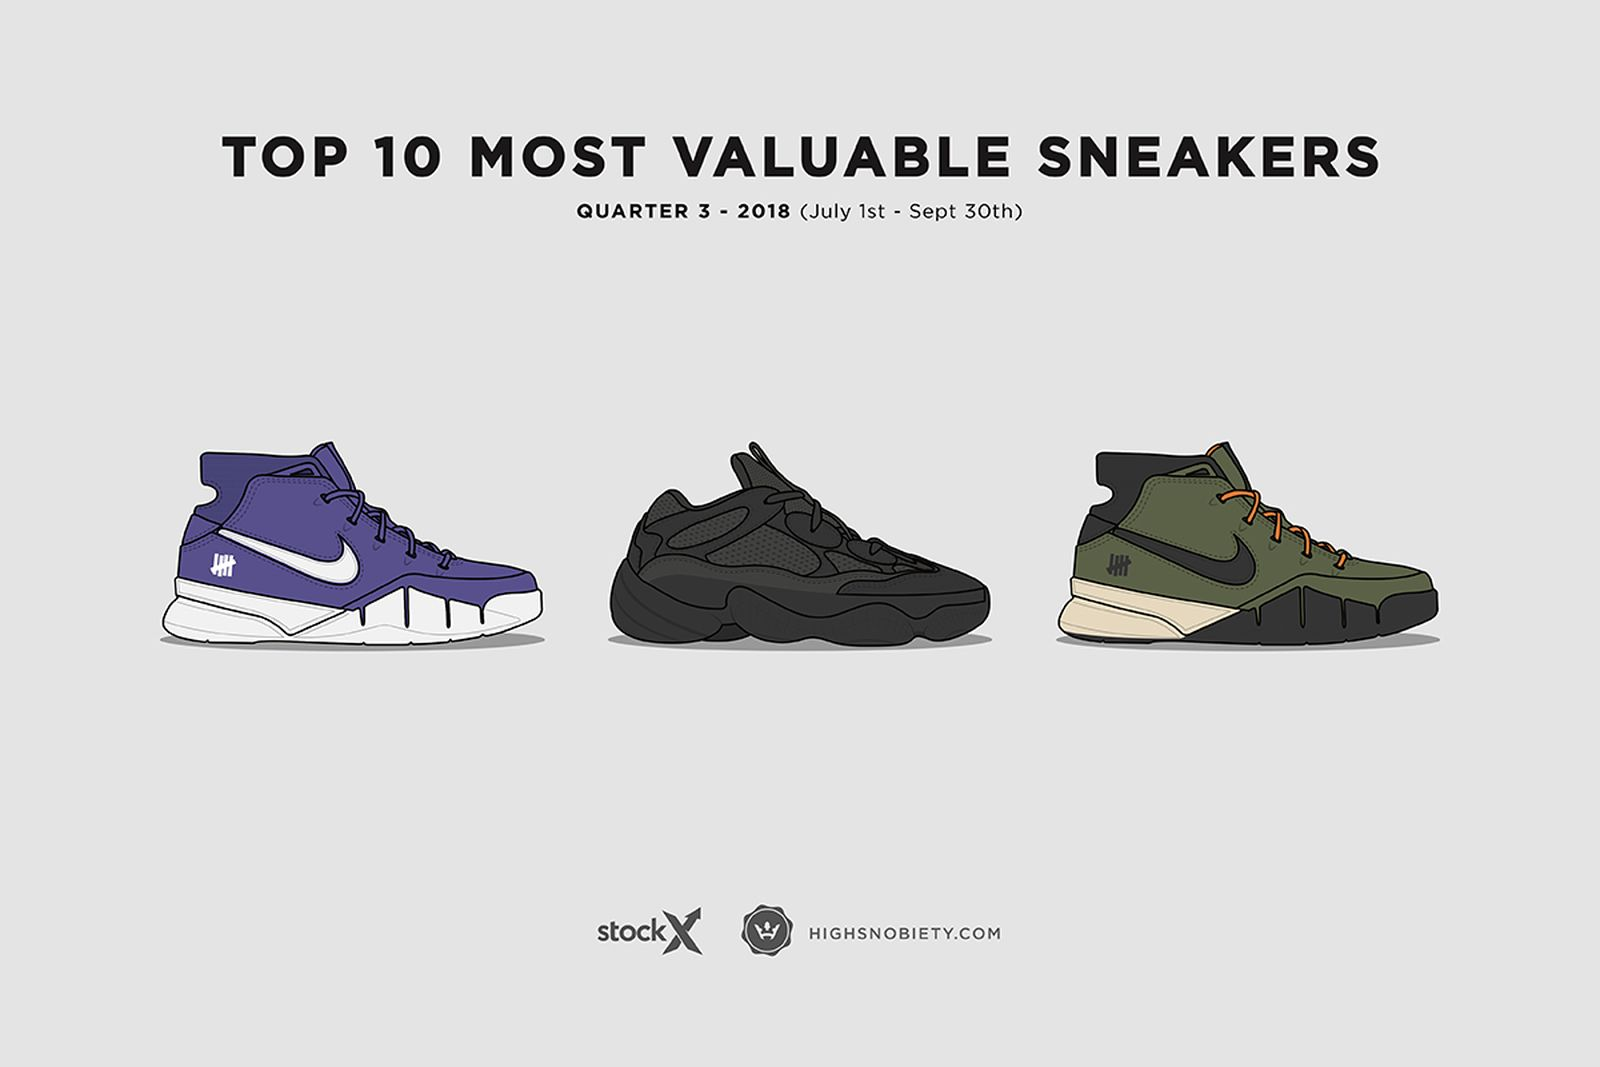 sneakers most expensive resold 2018 q3 main2 Adidas Kobe Bryant Nike